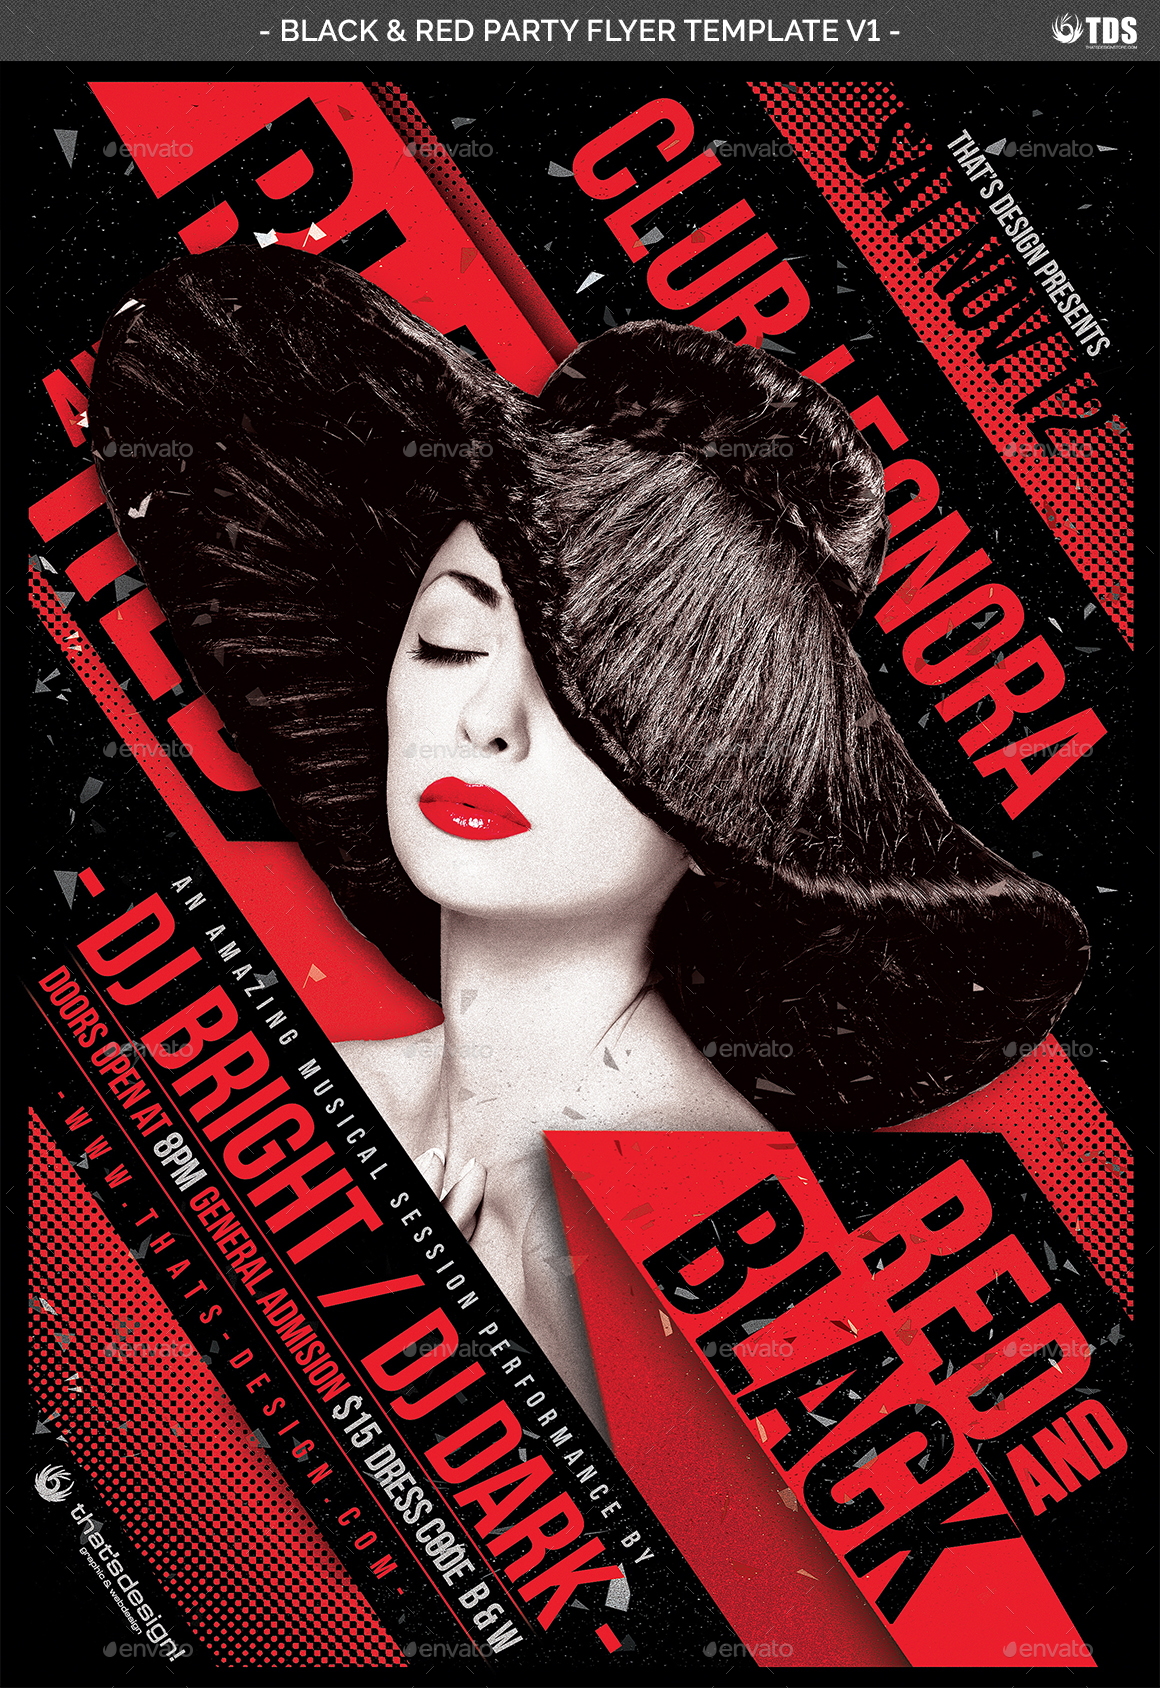 Black and Red Party Flyer Template V1 by lou606 – Red Flyer Template